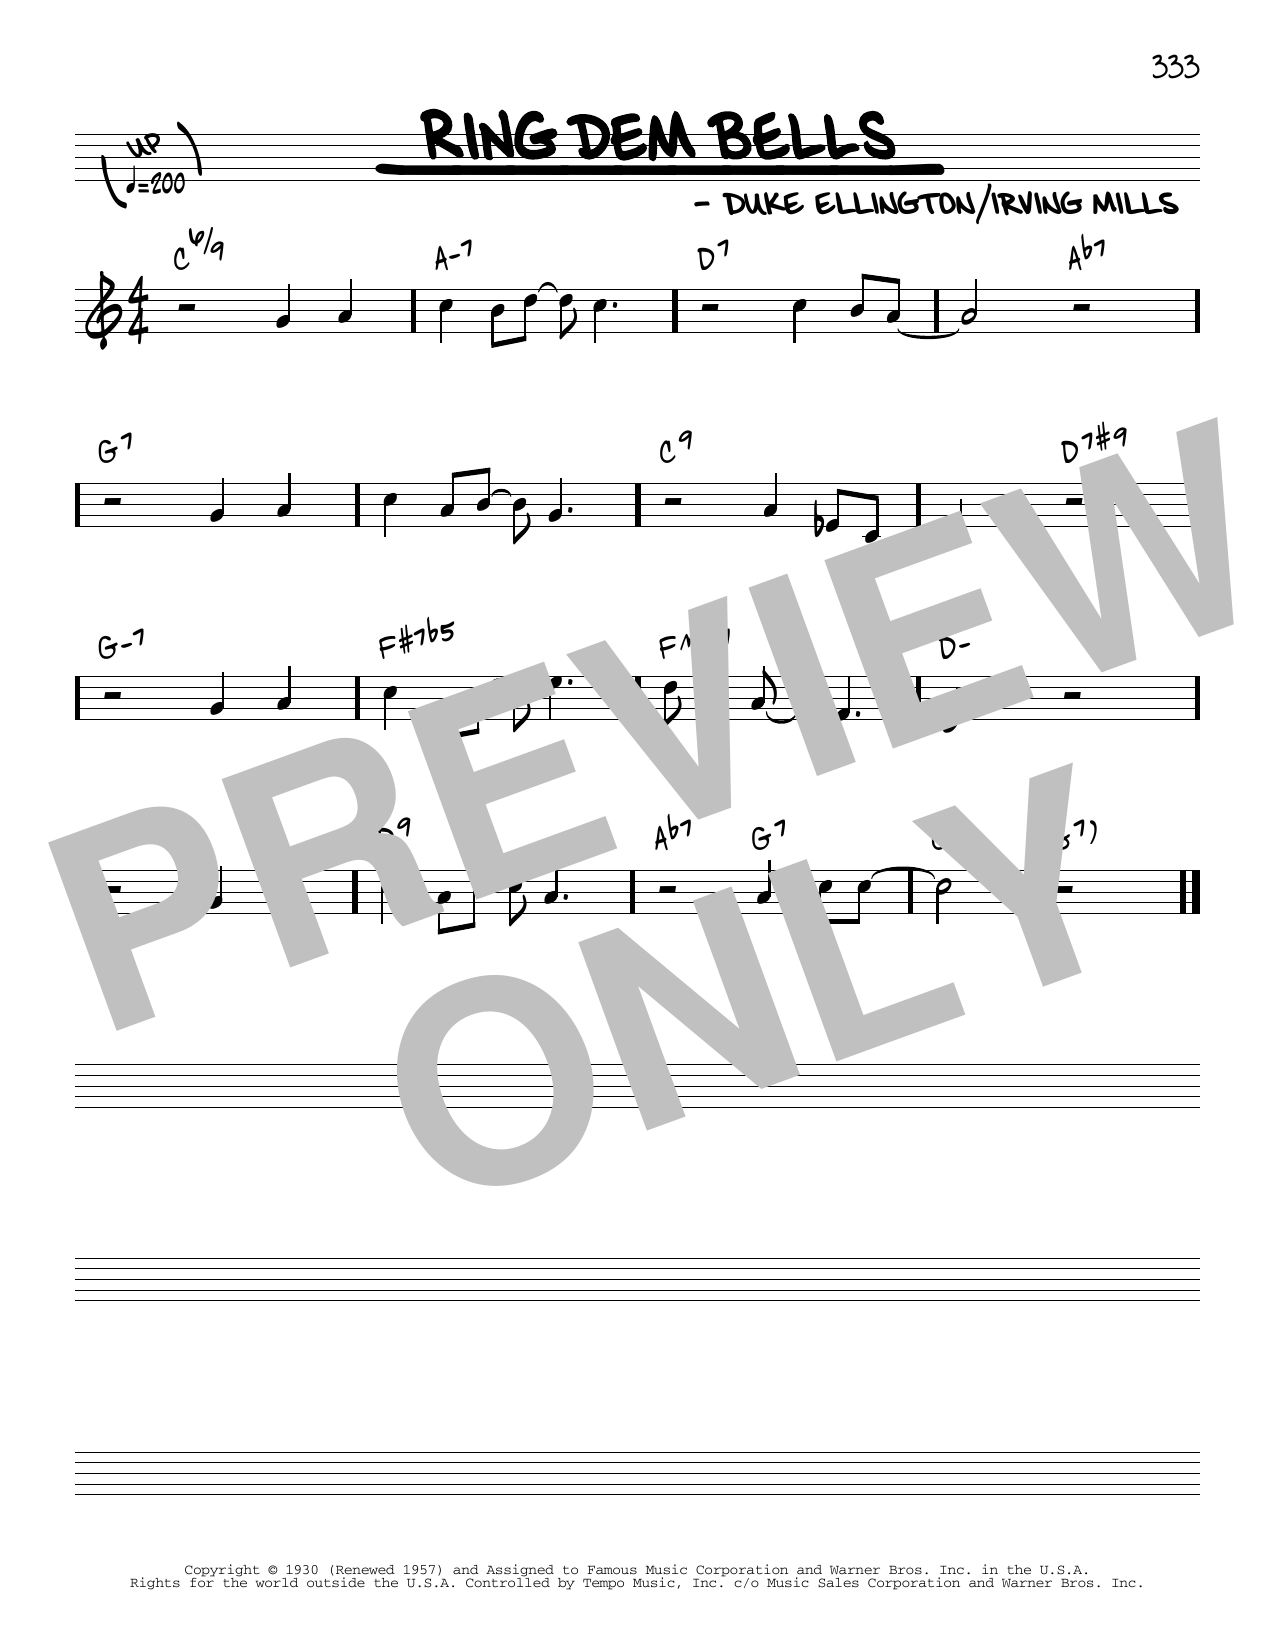 Duke Ellington Ring Dem Bells [Reharmonized version] (arr. Jack Grassel) sheet music notes printable PDF score